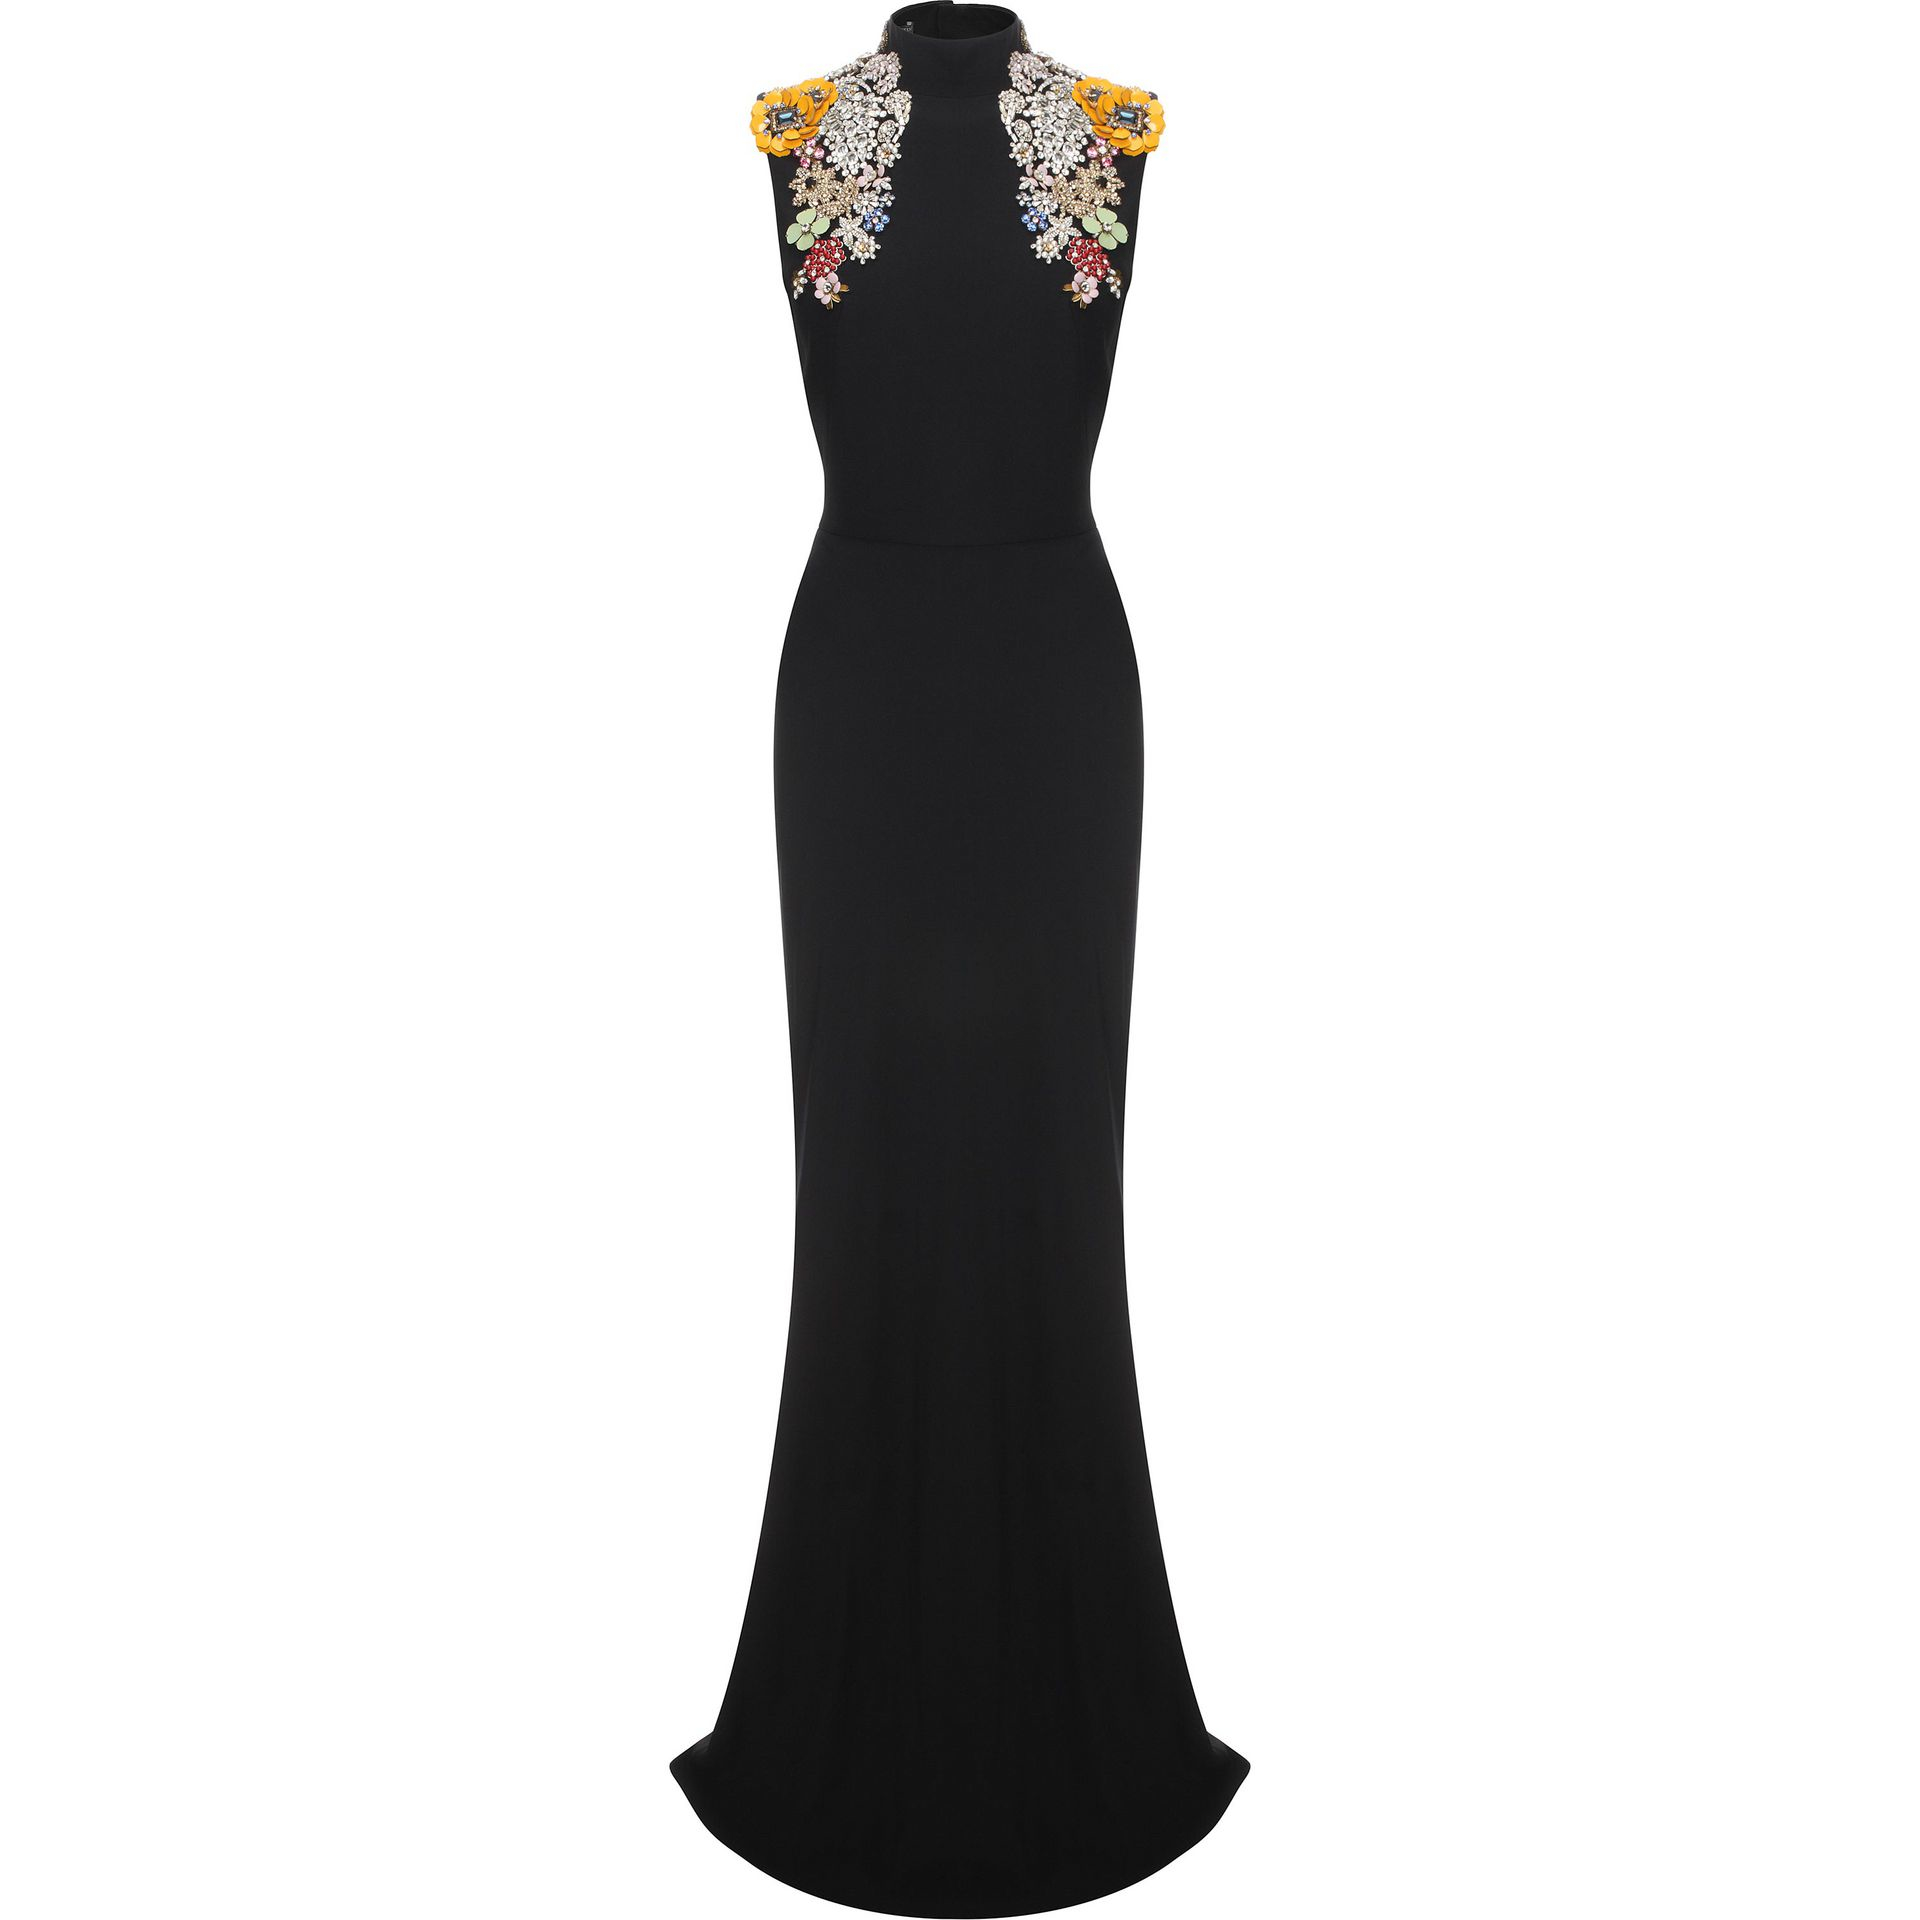 Alexander Mcqueen Embroidered Open Back Dress in Black - Lyst